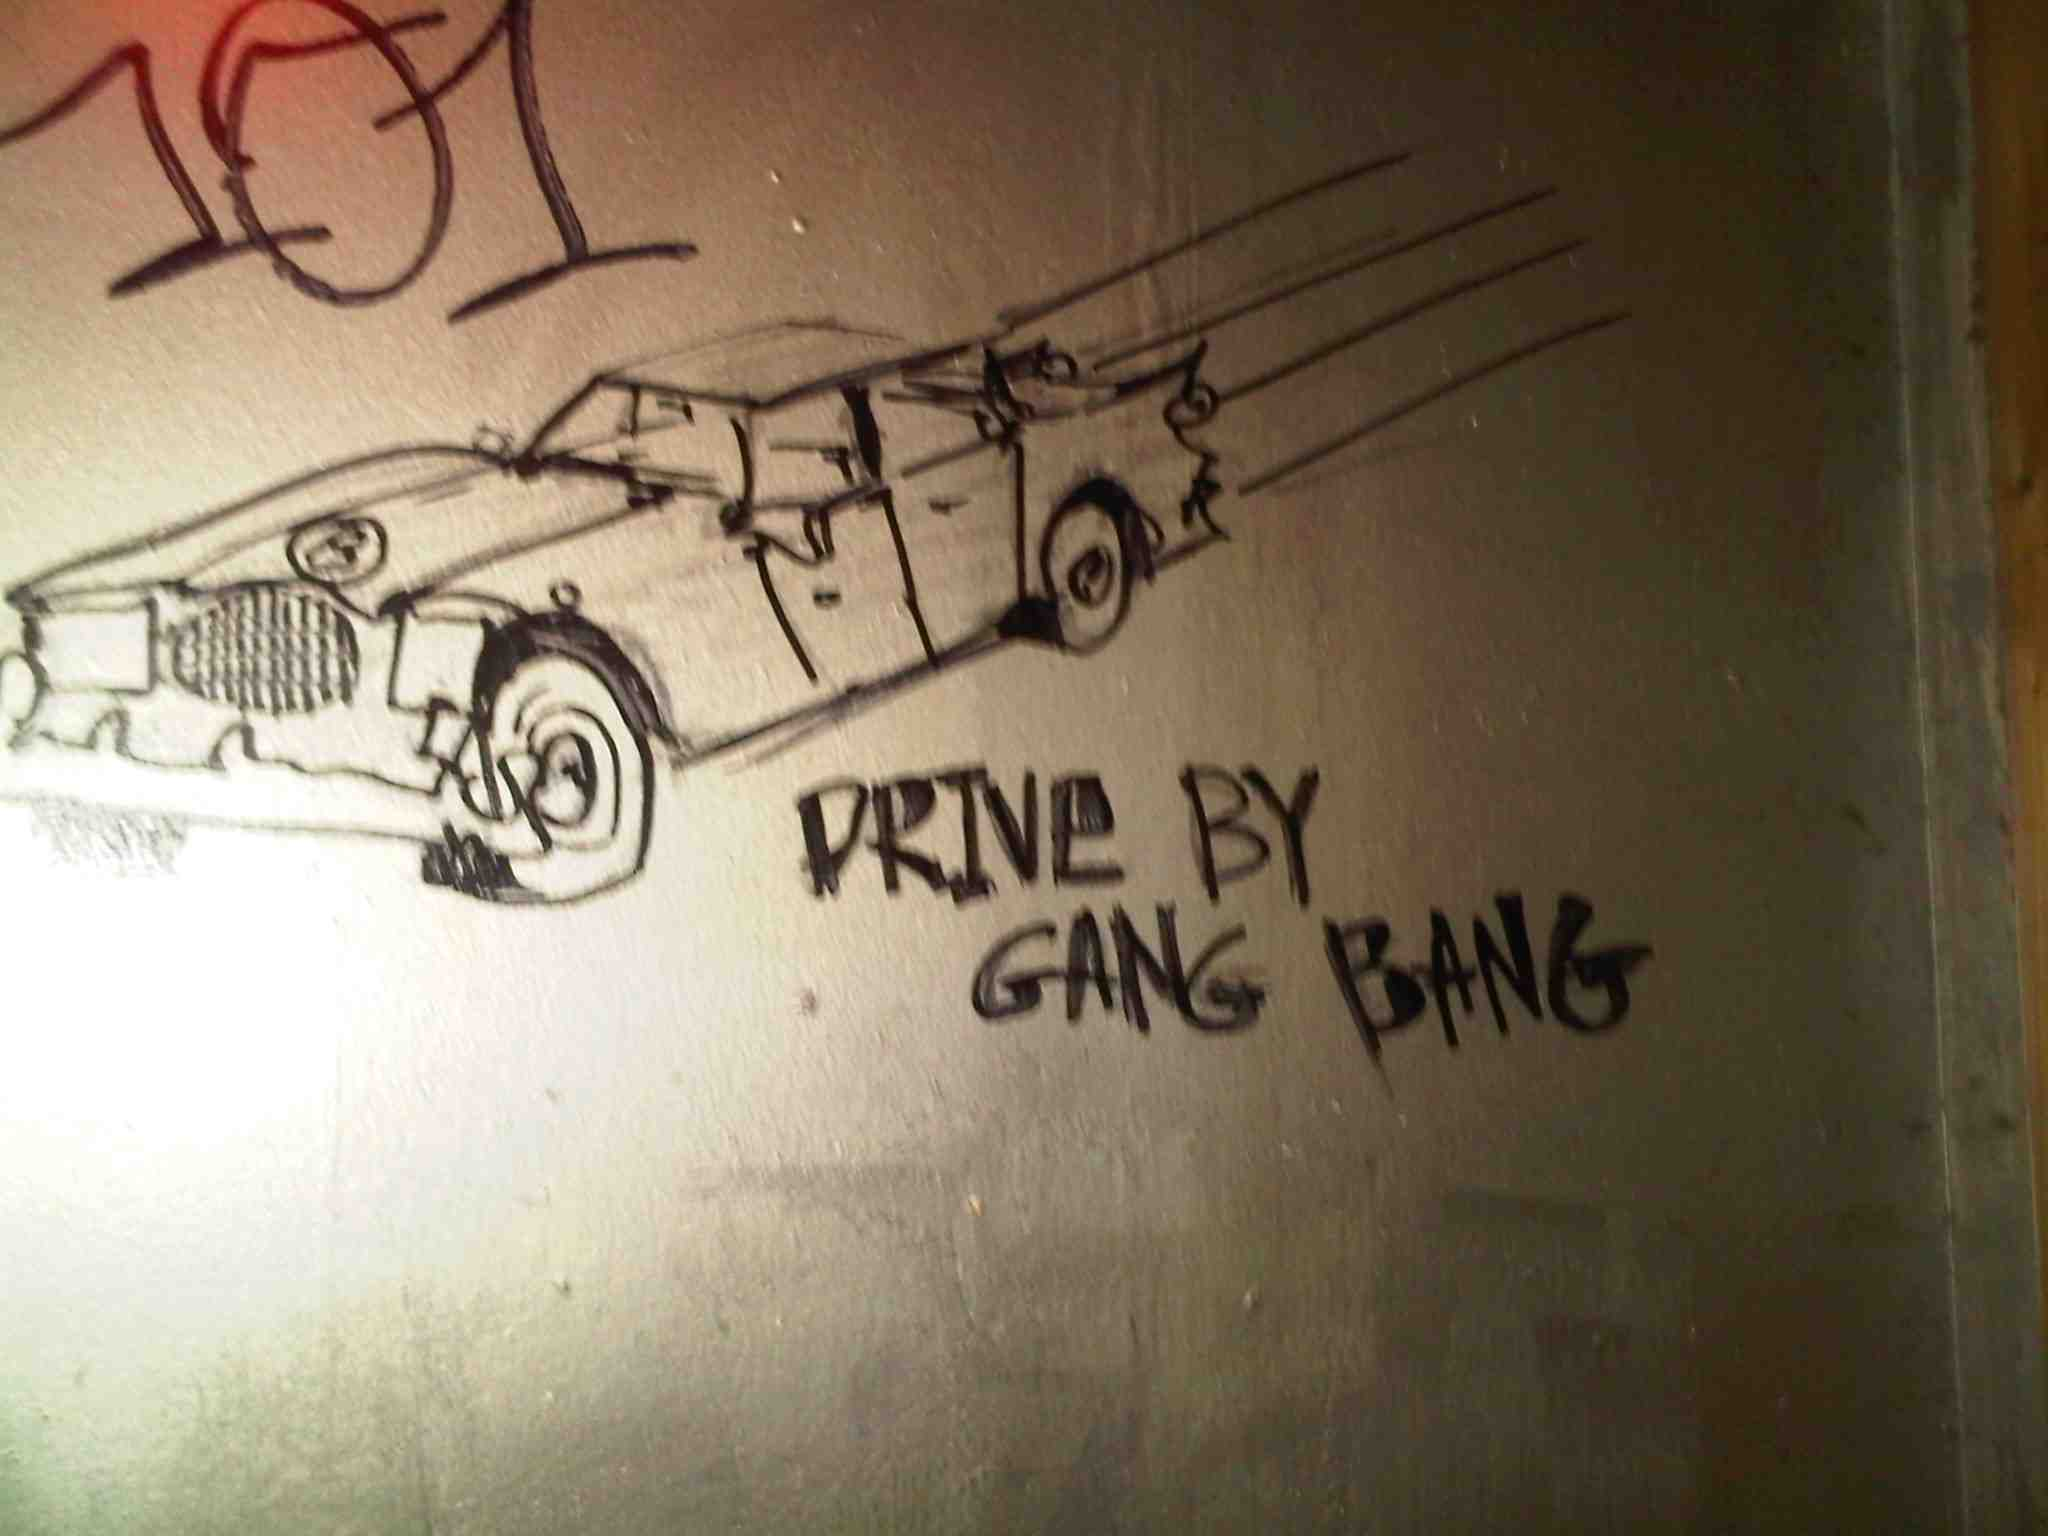 NYC - nublu - Drive By Gang Bang 1-6-10